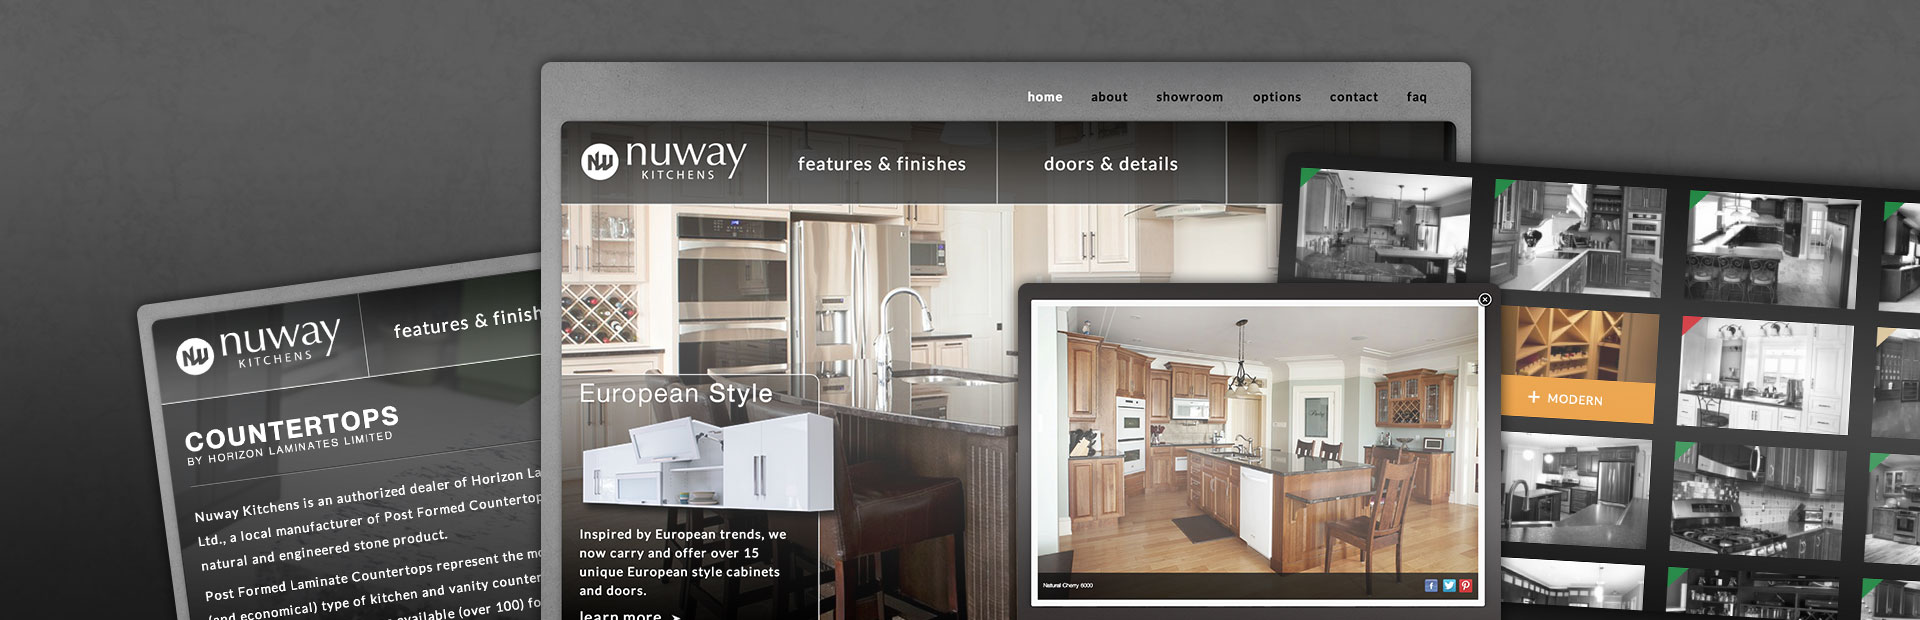 Nu Look, Nu Website, Nuway Kitchens